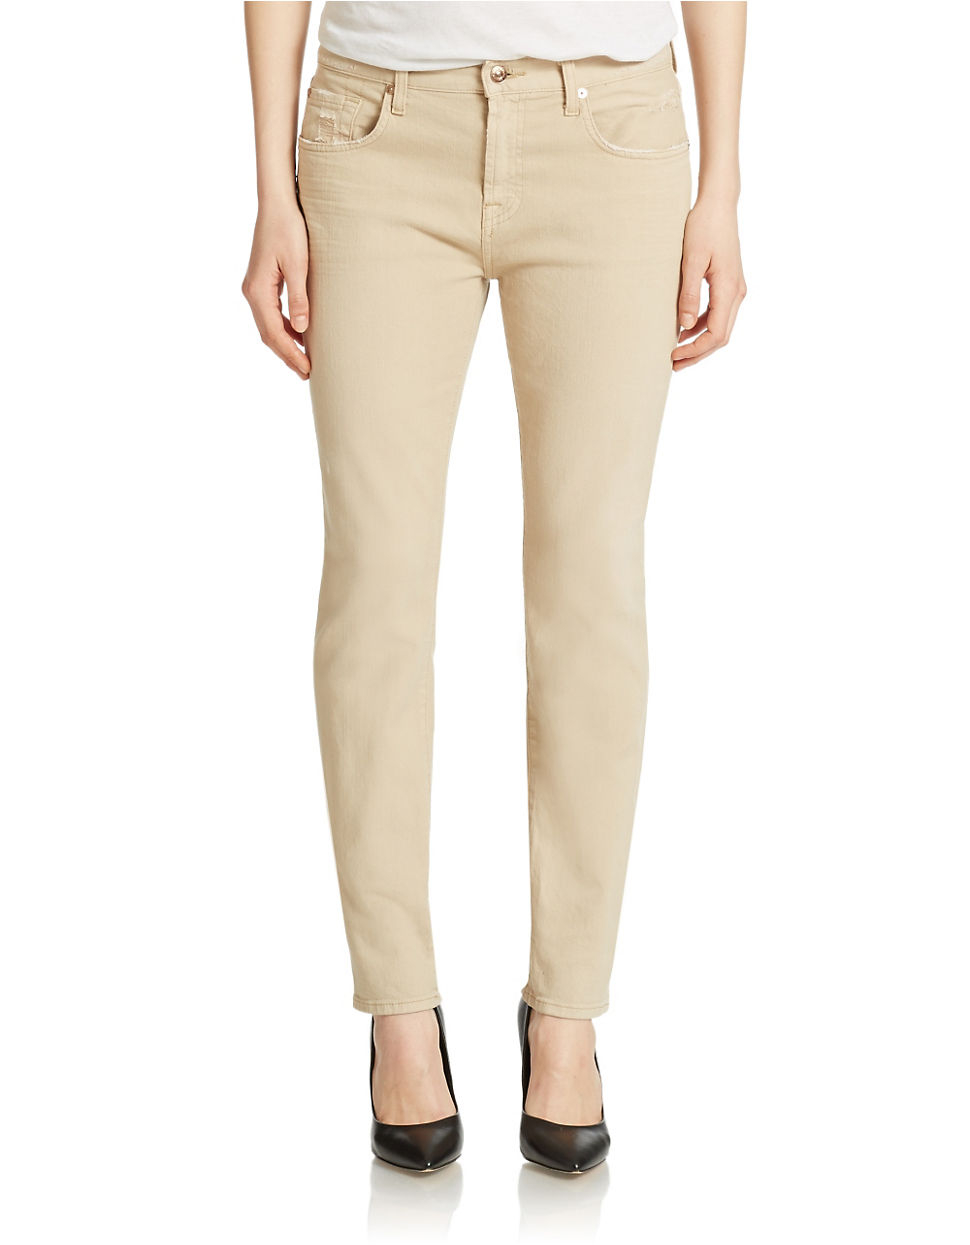 f852926ef58 7 For All Mankind Relaxed Skinny Jeans in Natural - Lyst